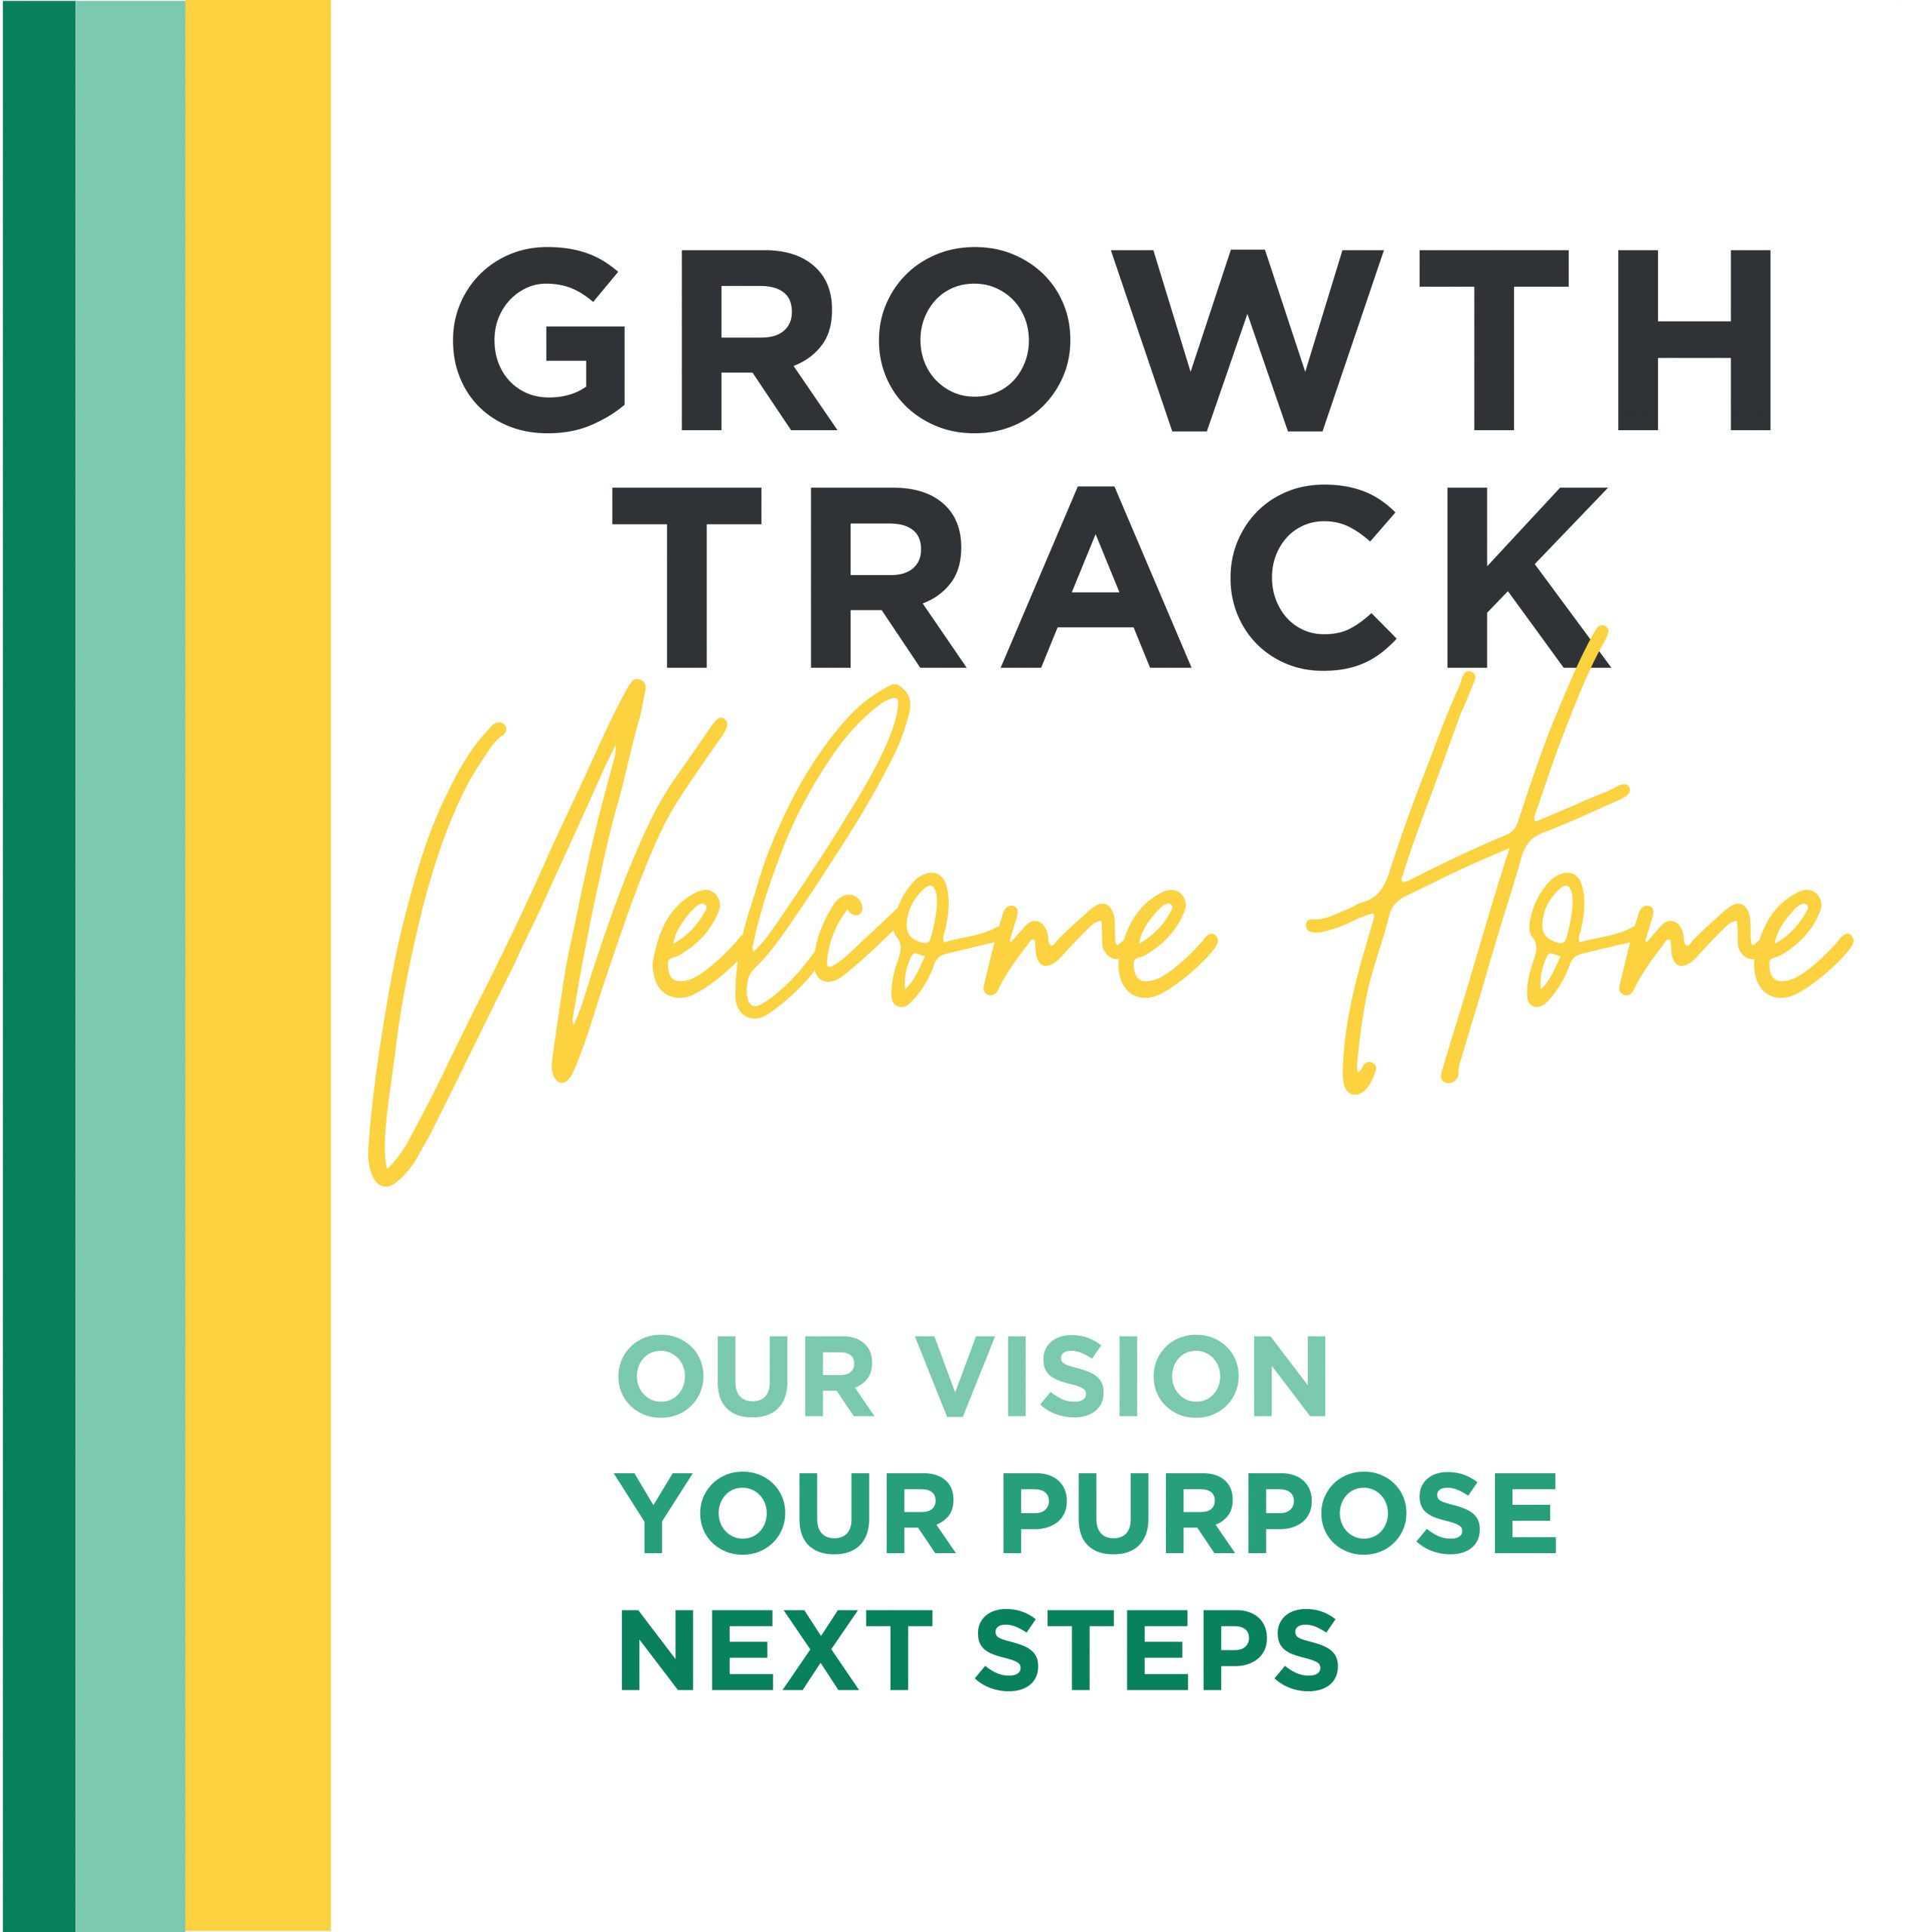 Growth Track at View Church Tygerberg Hills